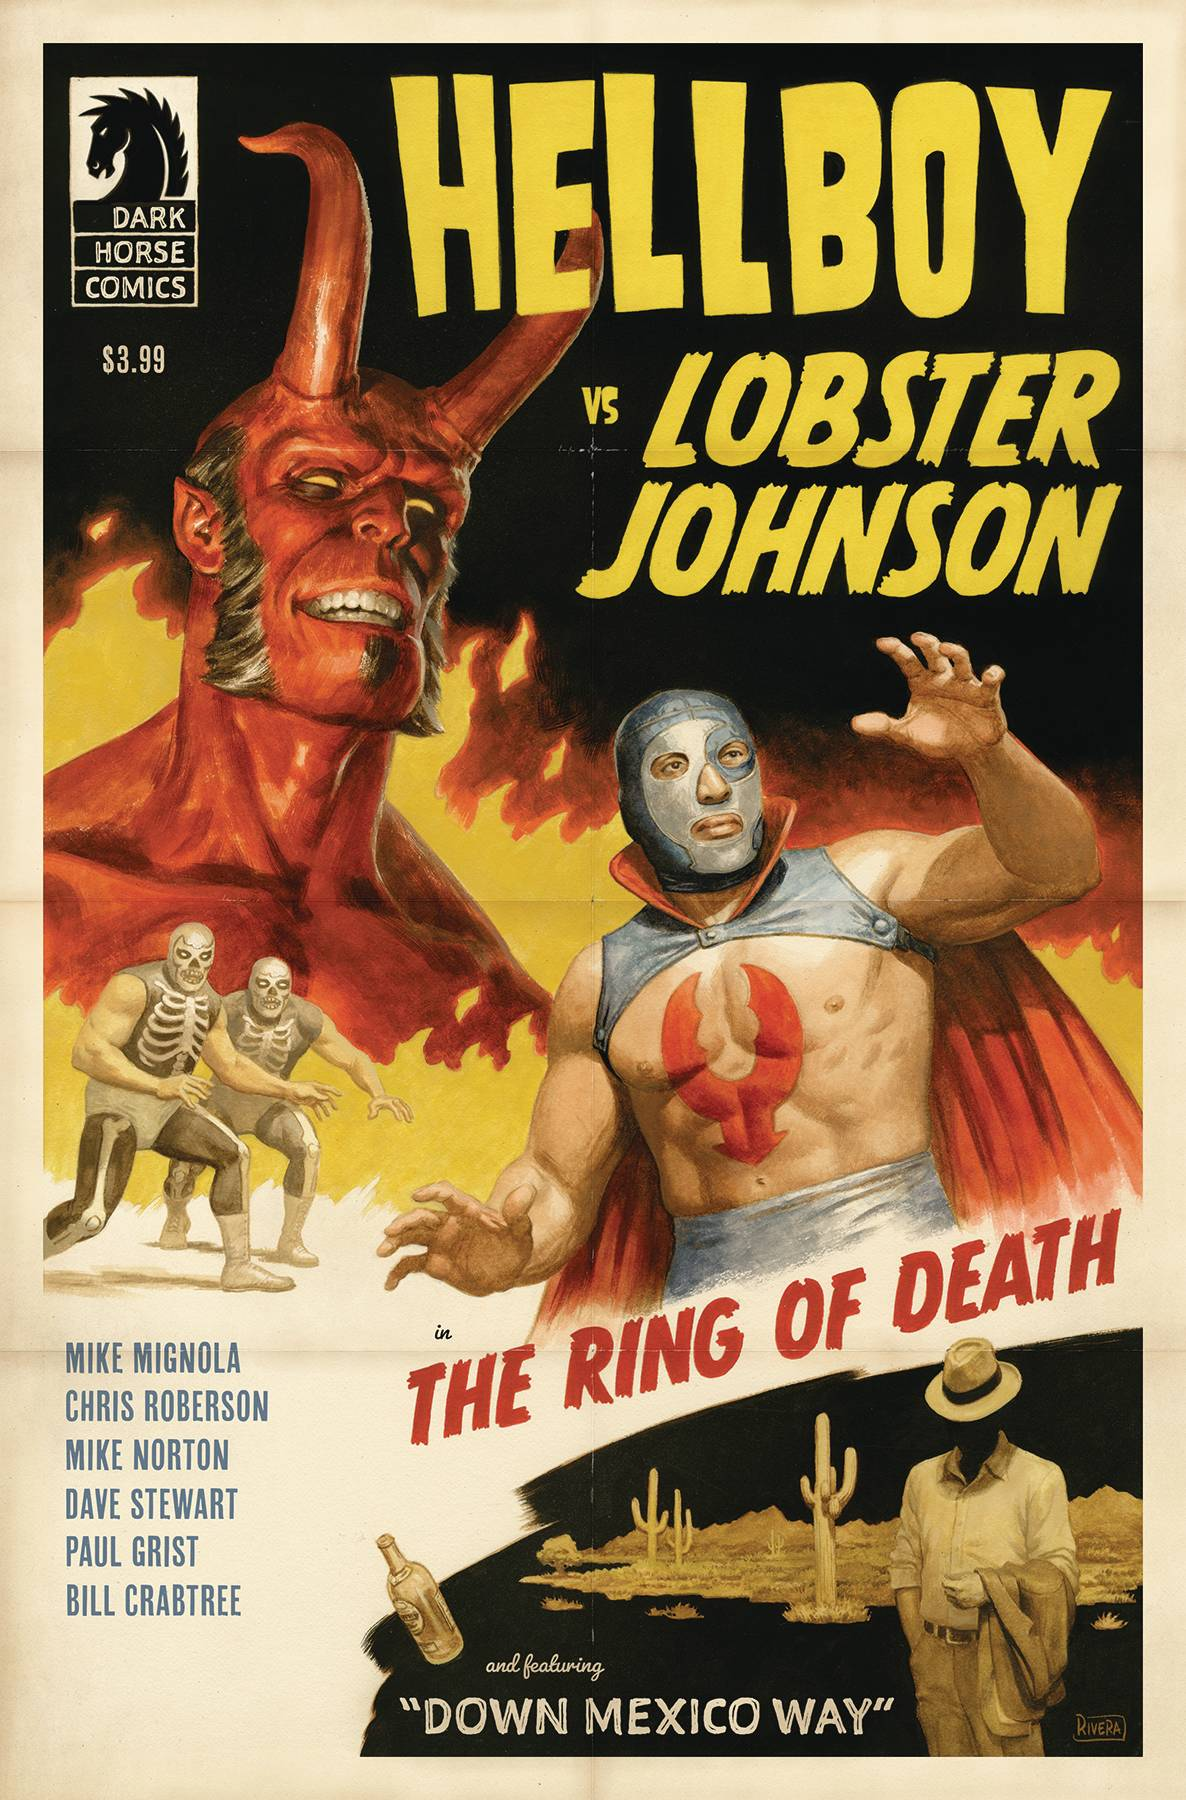 HELLBOY VS LOBSTER JOHNSON RING OF DEATH.jpg